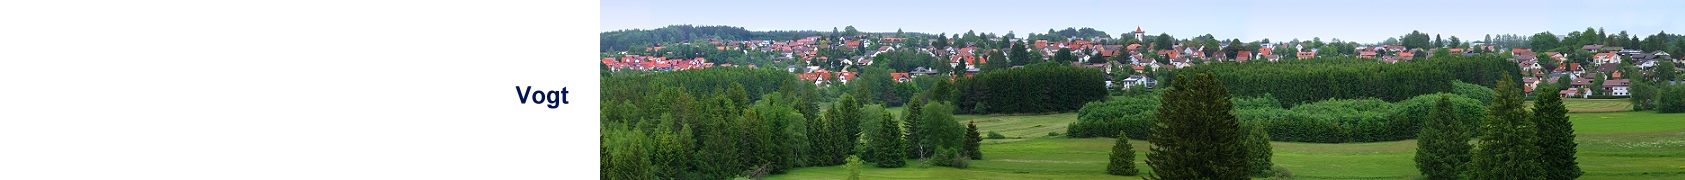 panorama_vogt_1